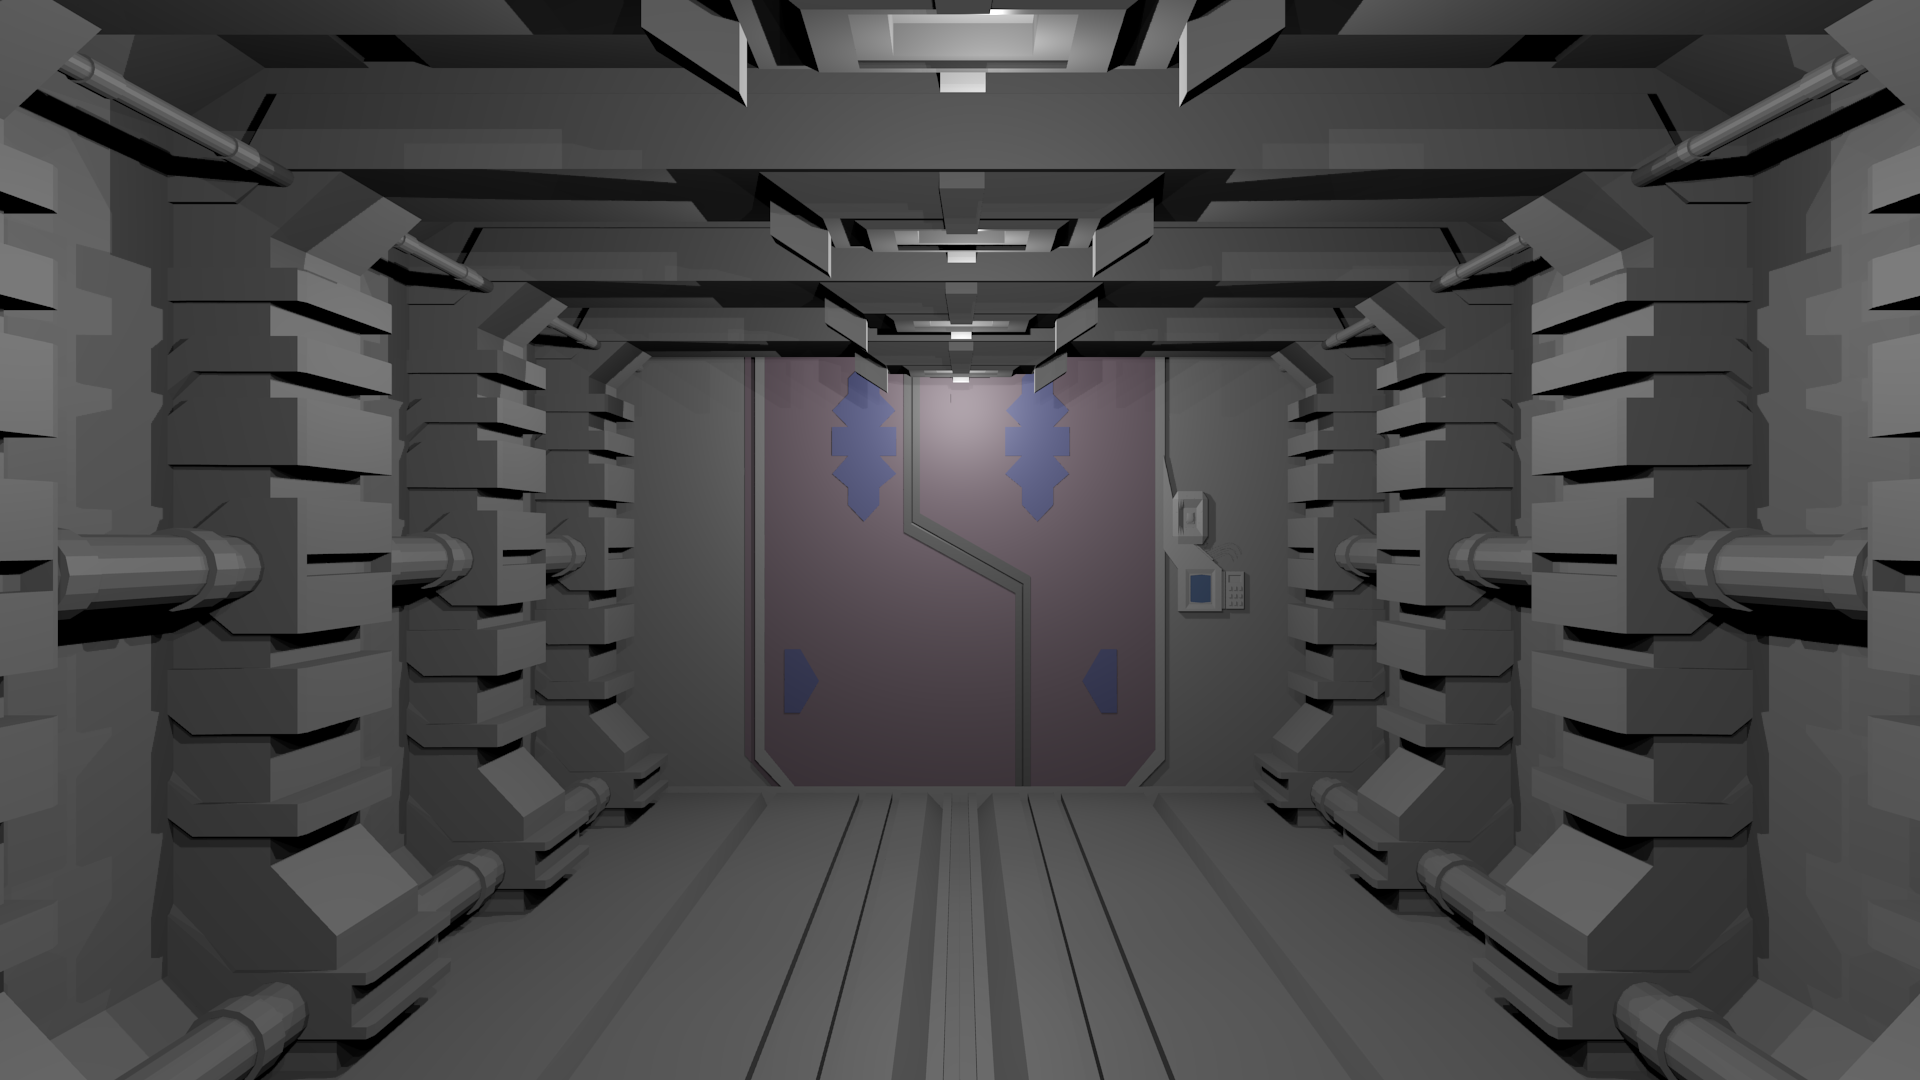 Wip couloir de vaisseau spatial blender par lehrse for Decoration porte star wars